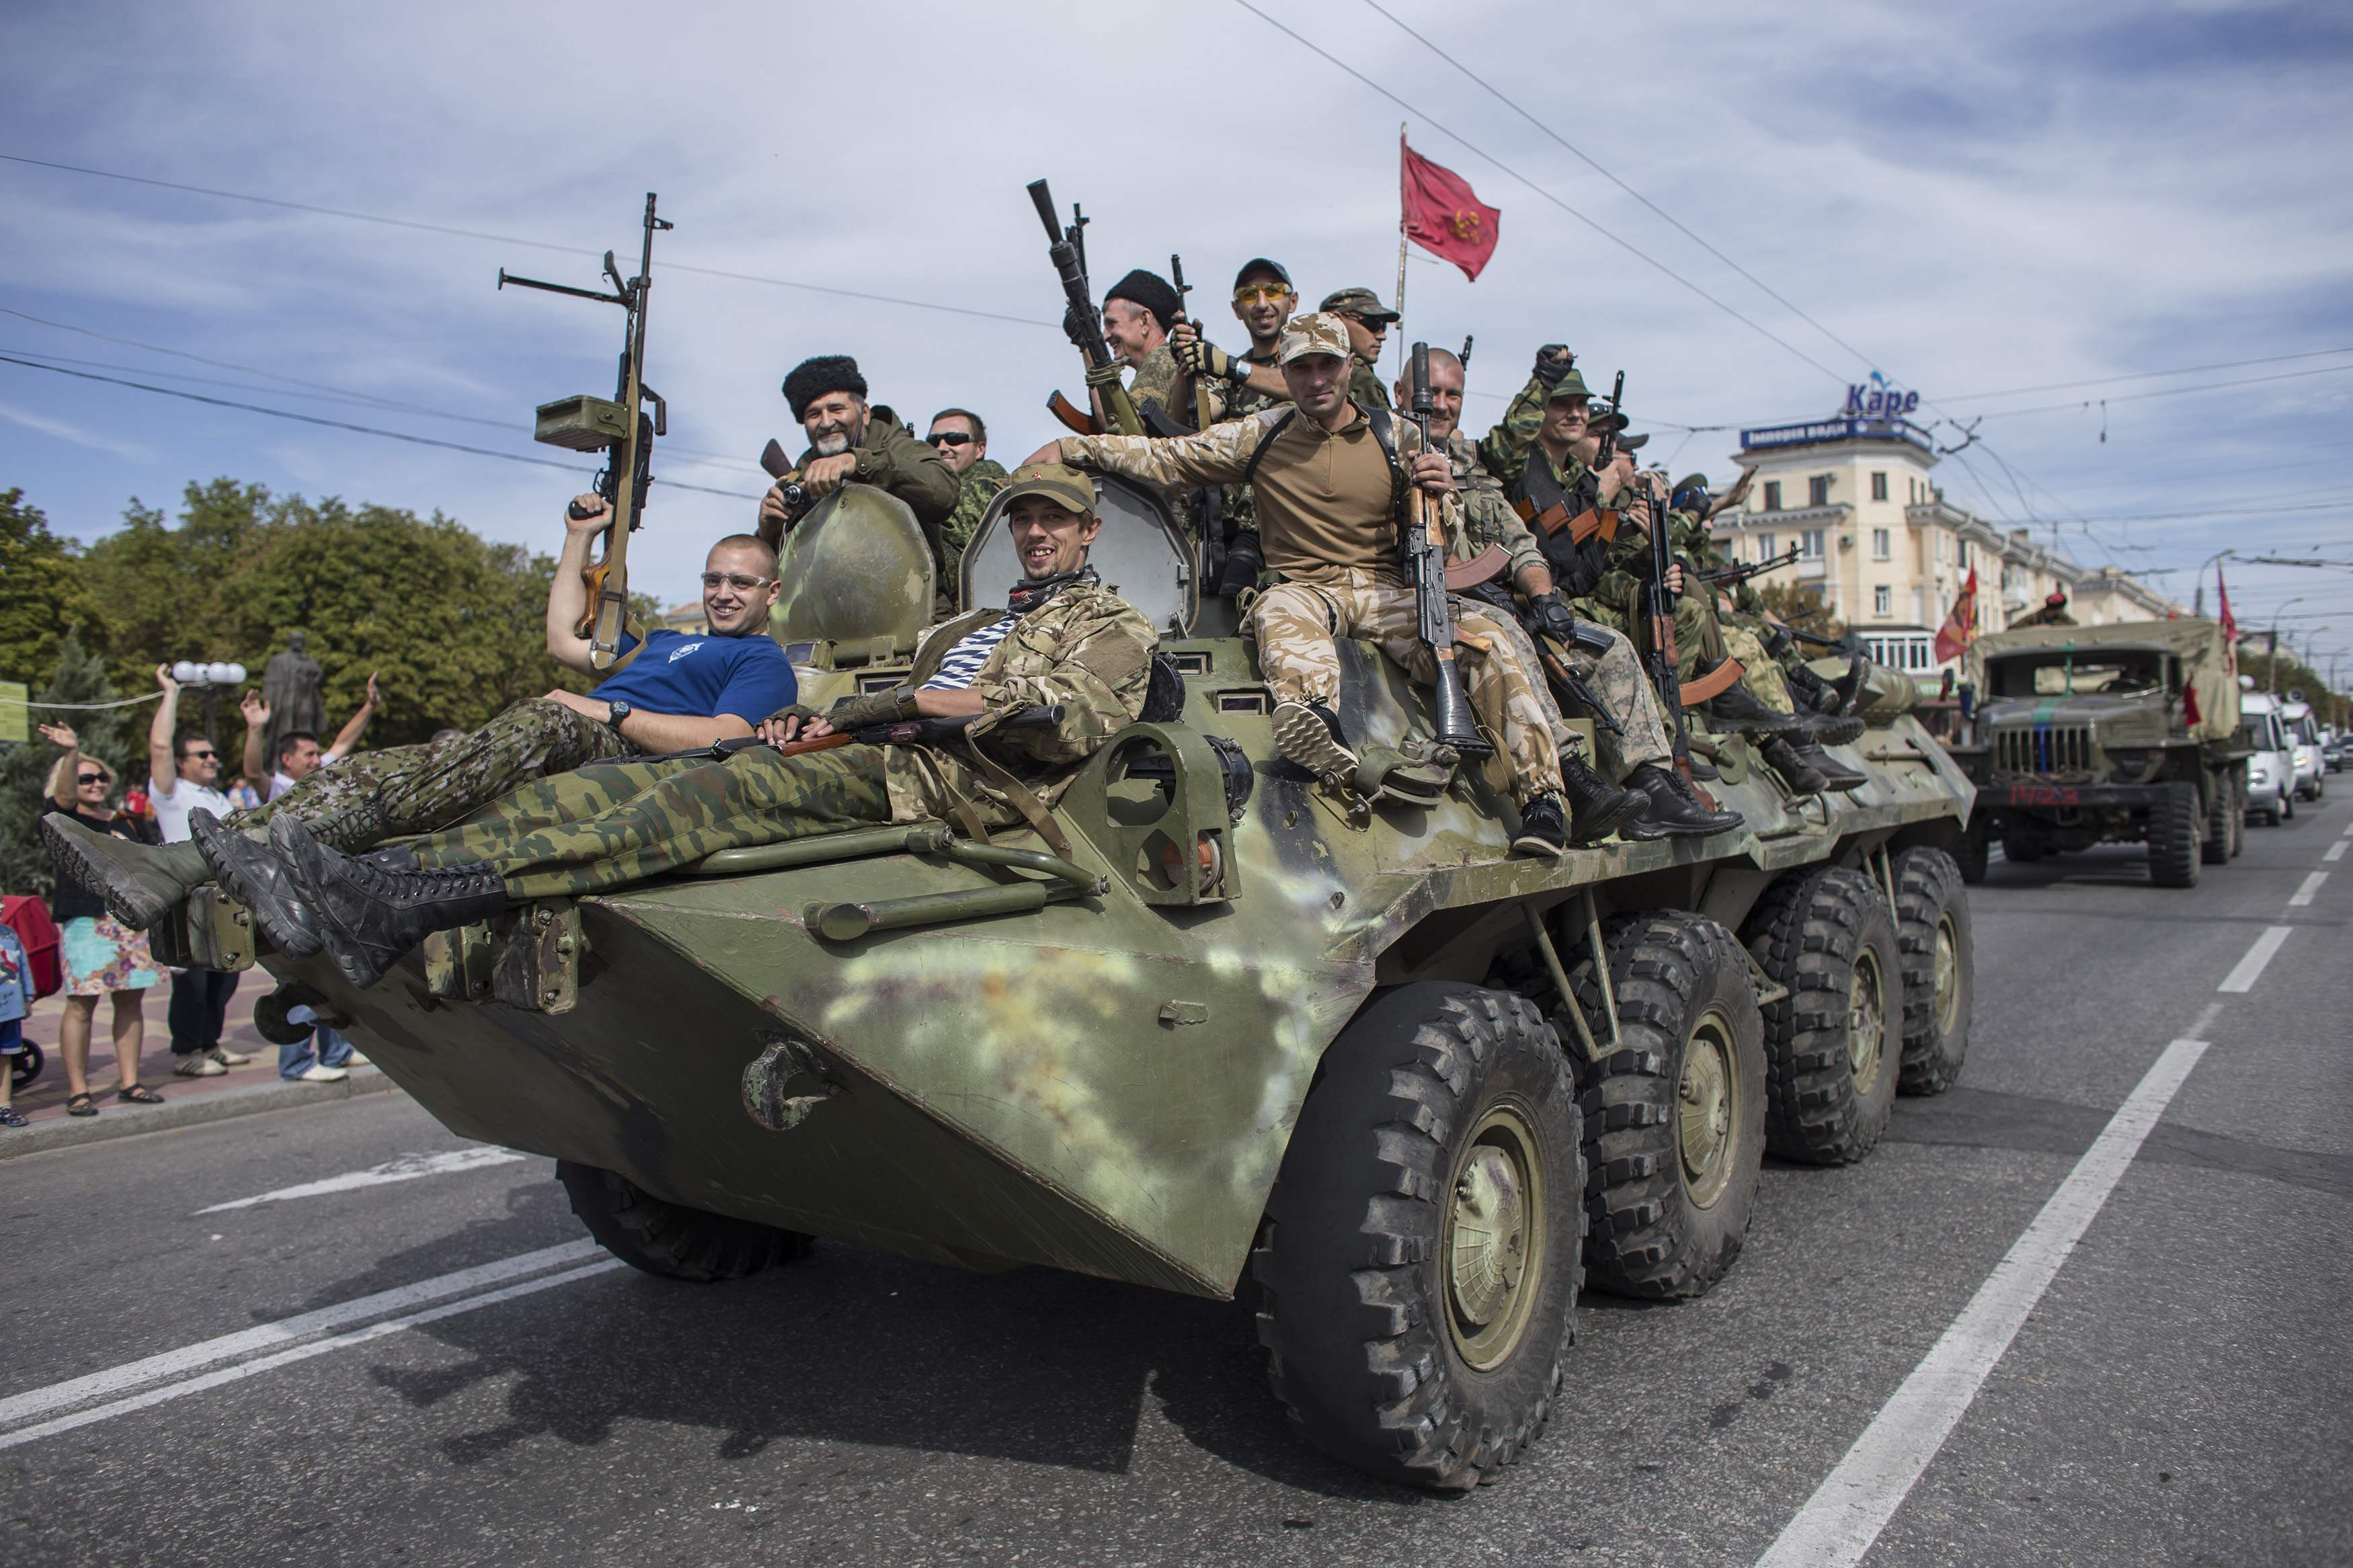 Pro-Russian rebels ride on an APC during a parade in Luhanks, eastern Ukraine